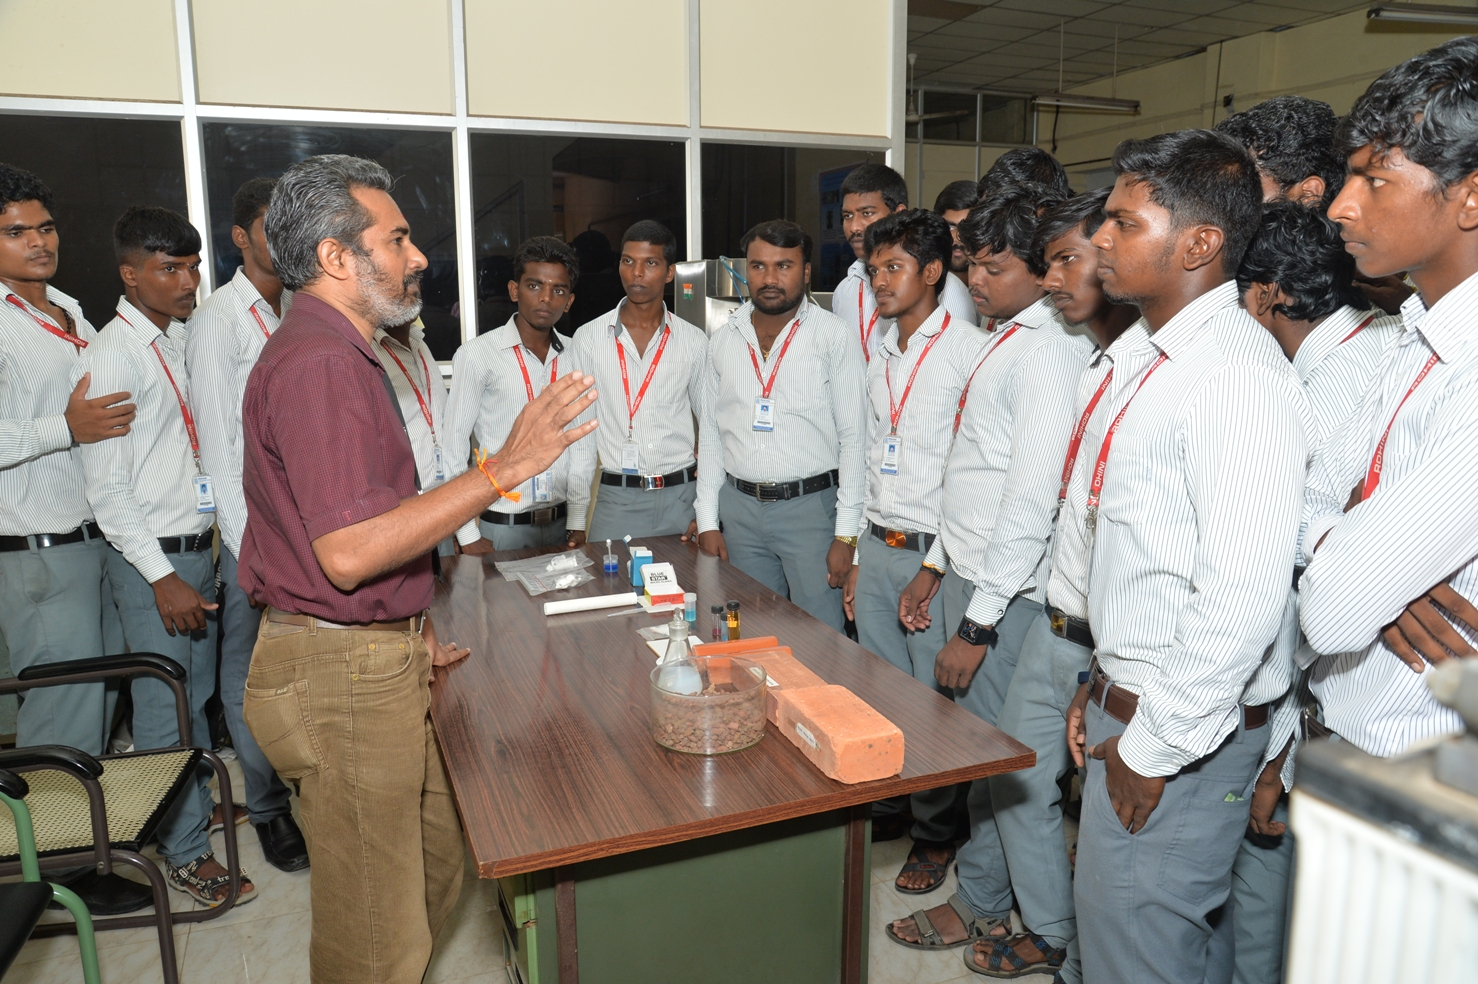 /wp-content/gallery/csir-foundationday/93.JPG